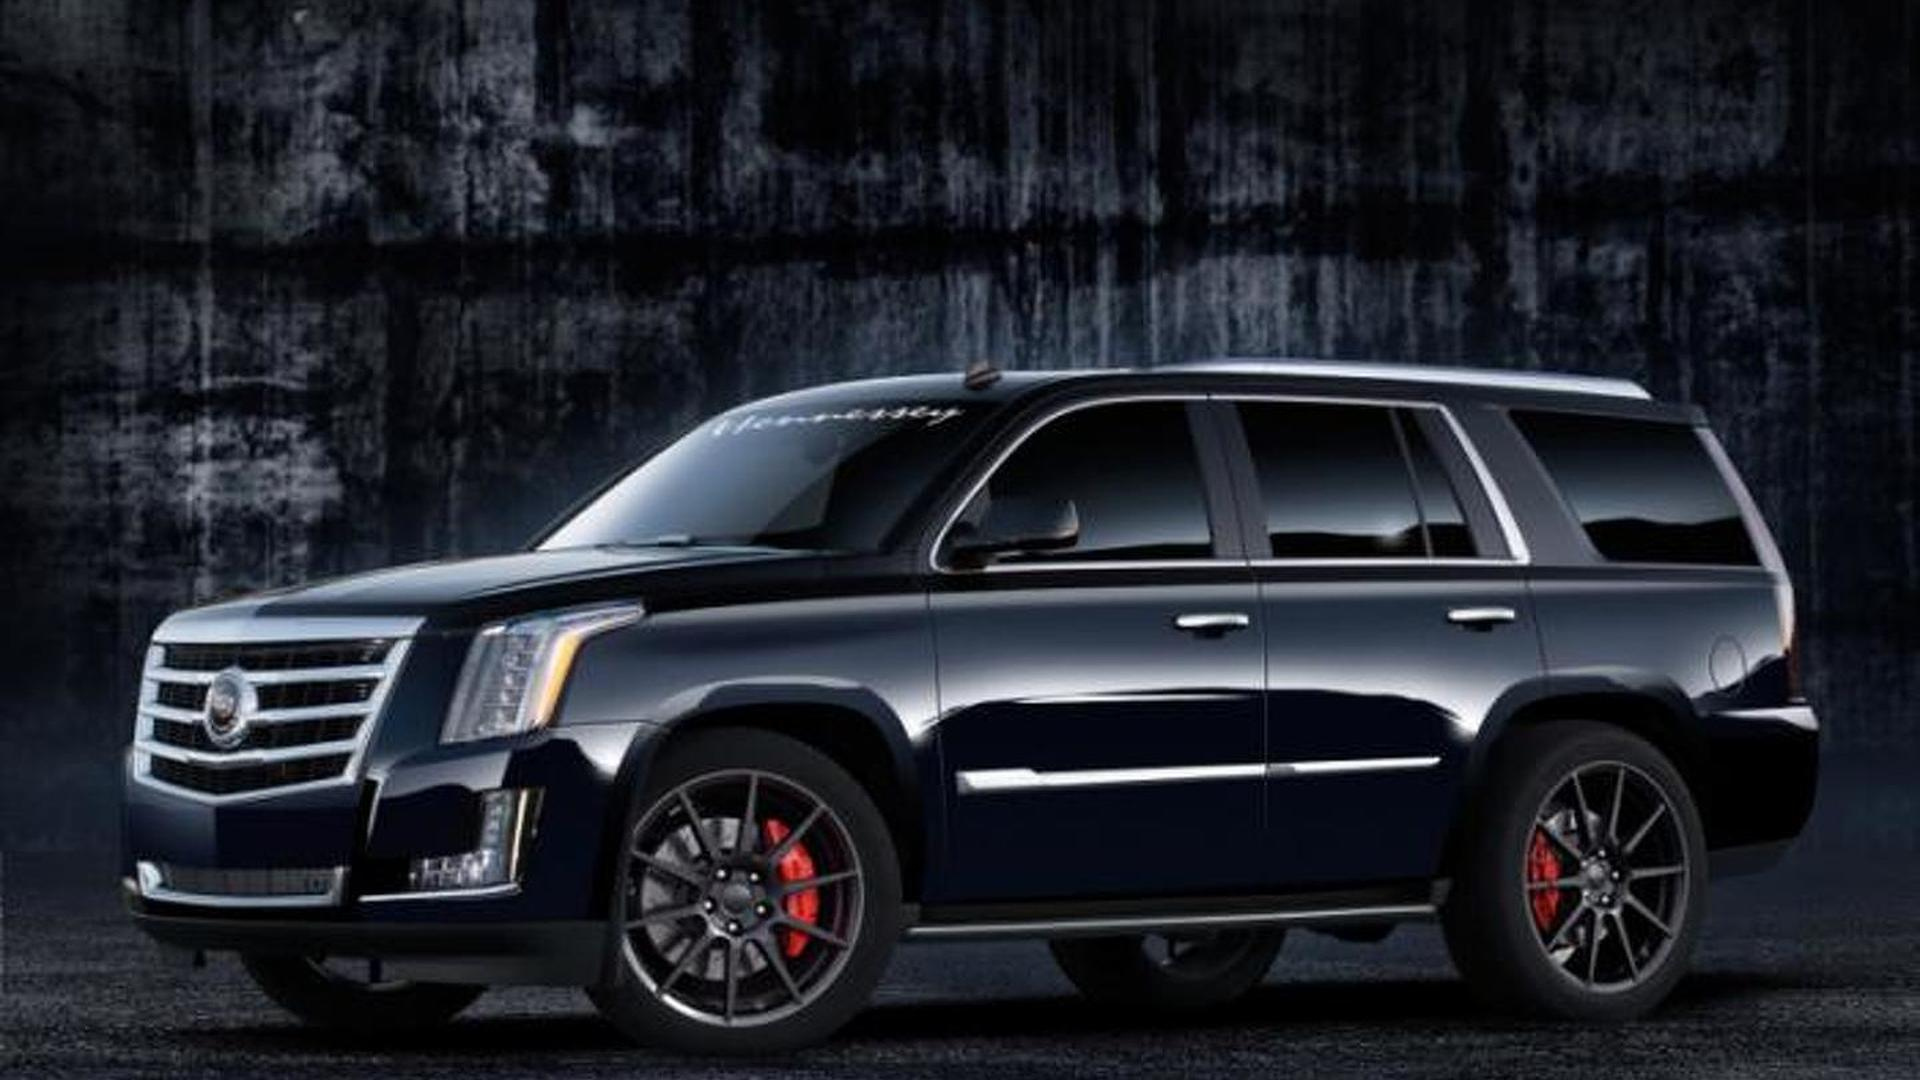 2015 Cadillac Escalade supercharged by Hennessey to 557 bhp